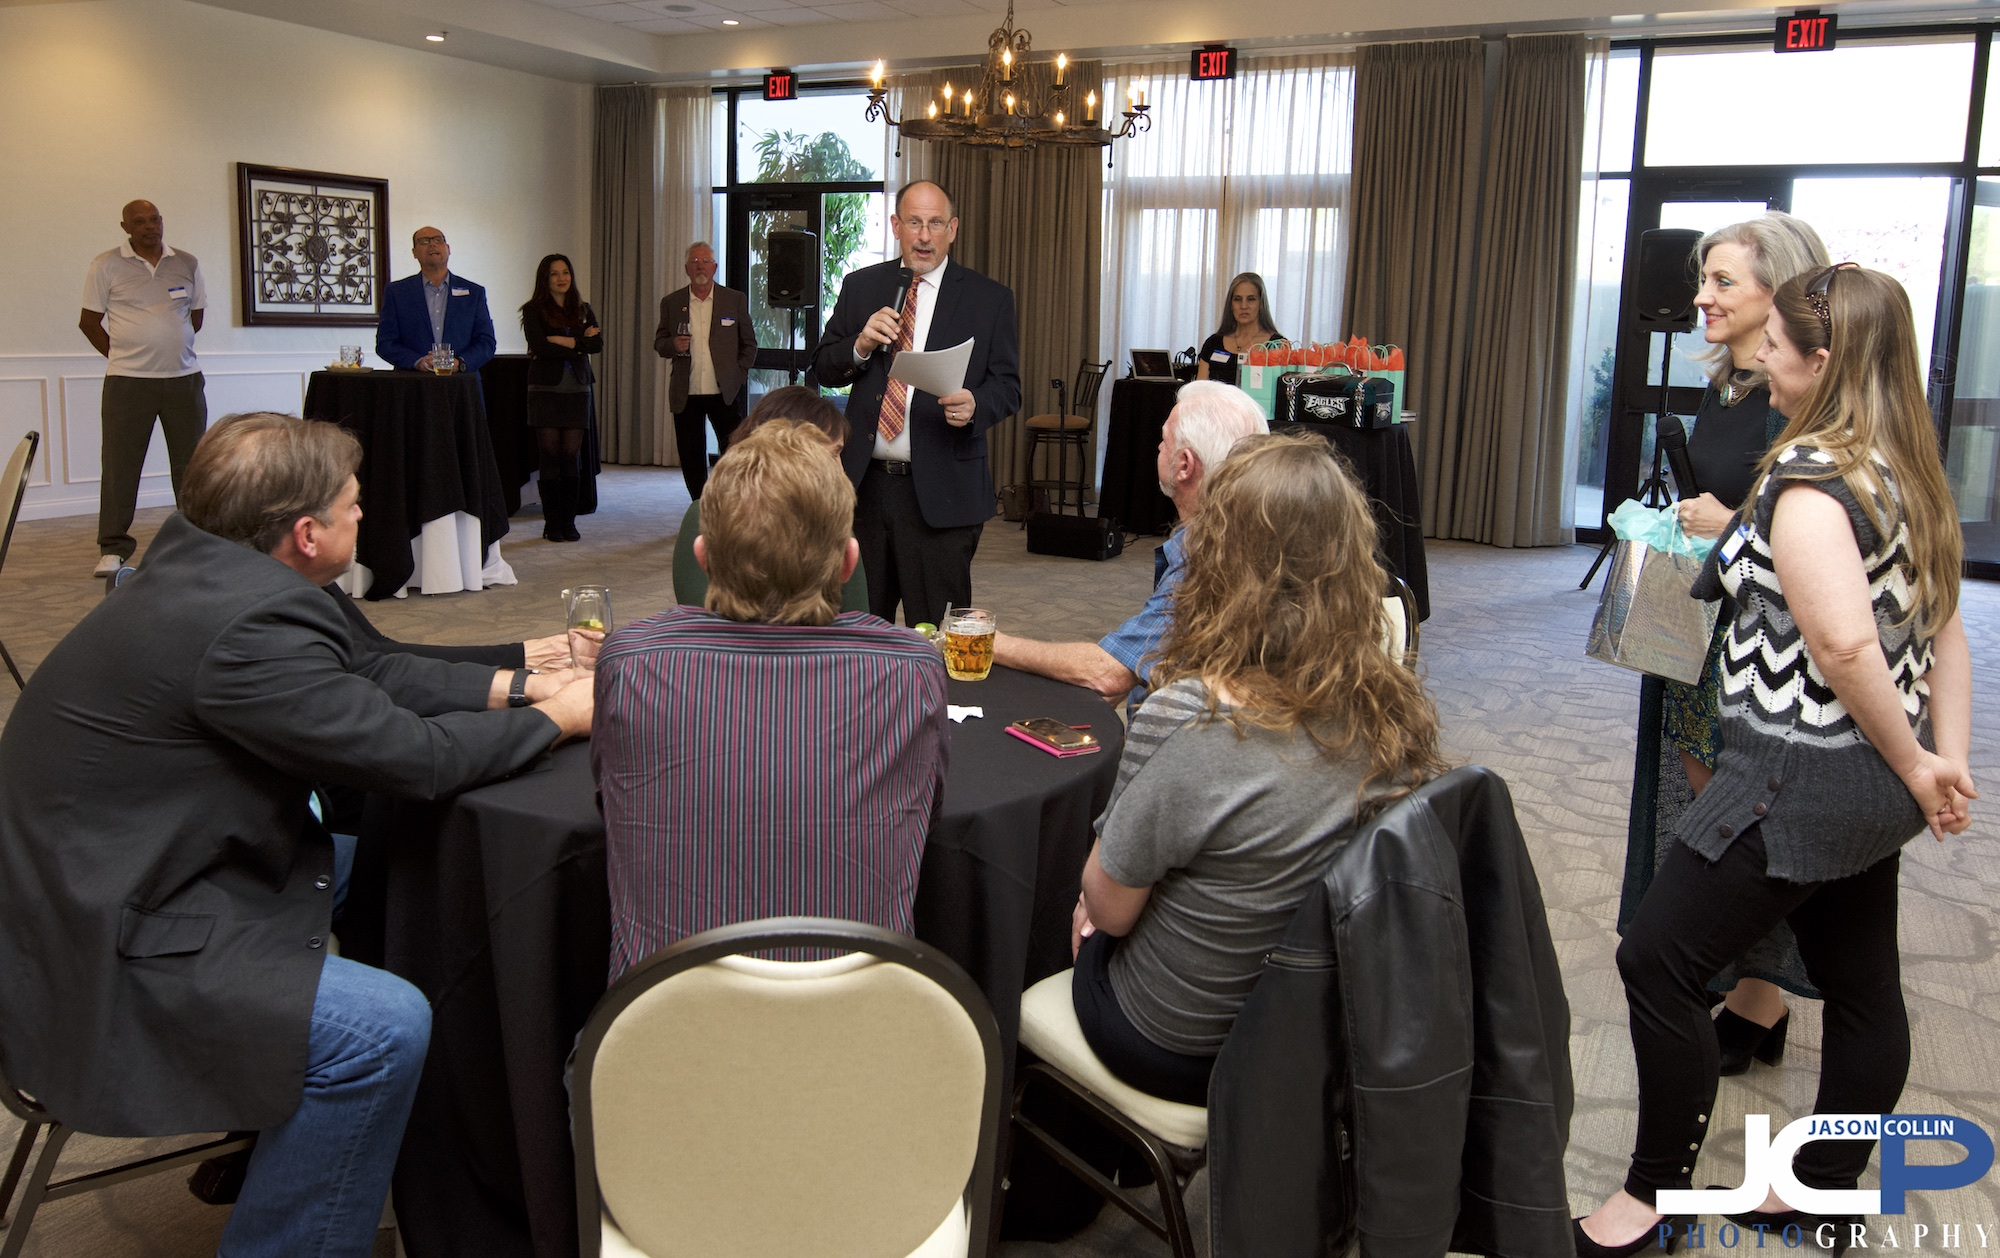 The Southwest Life Real Estate Group hosted an Inner Circle event to introduce mutual business friends at the Albuquerque Country Club